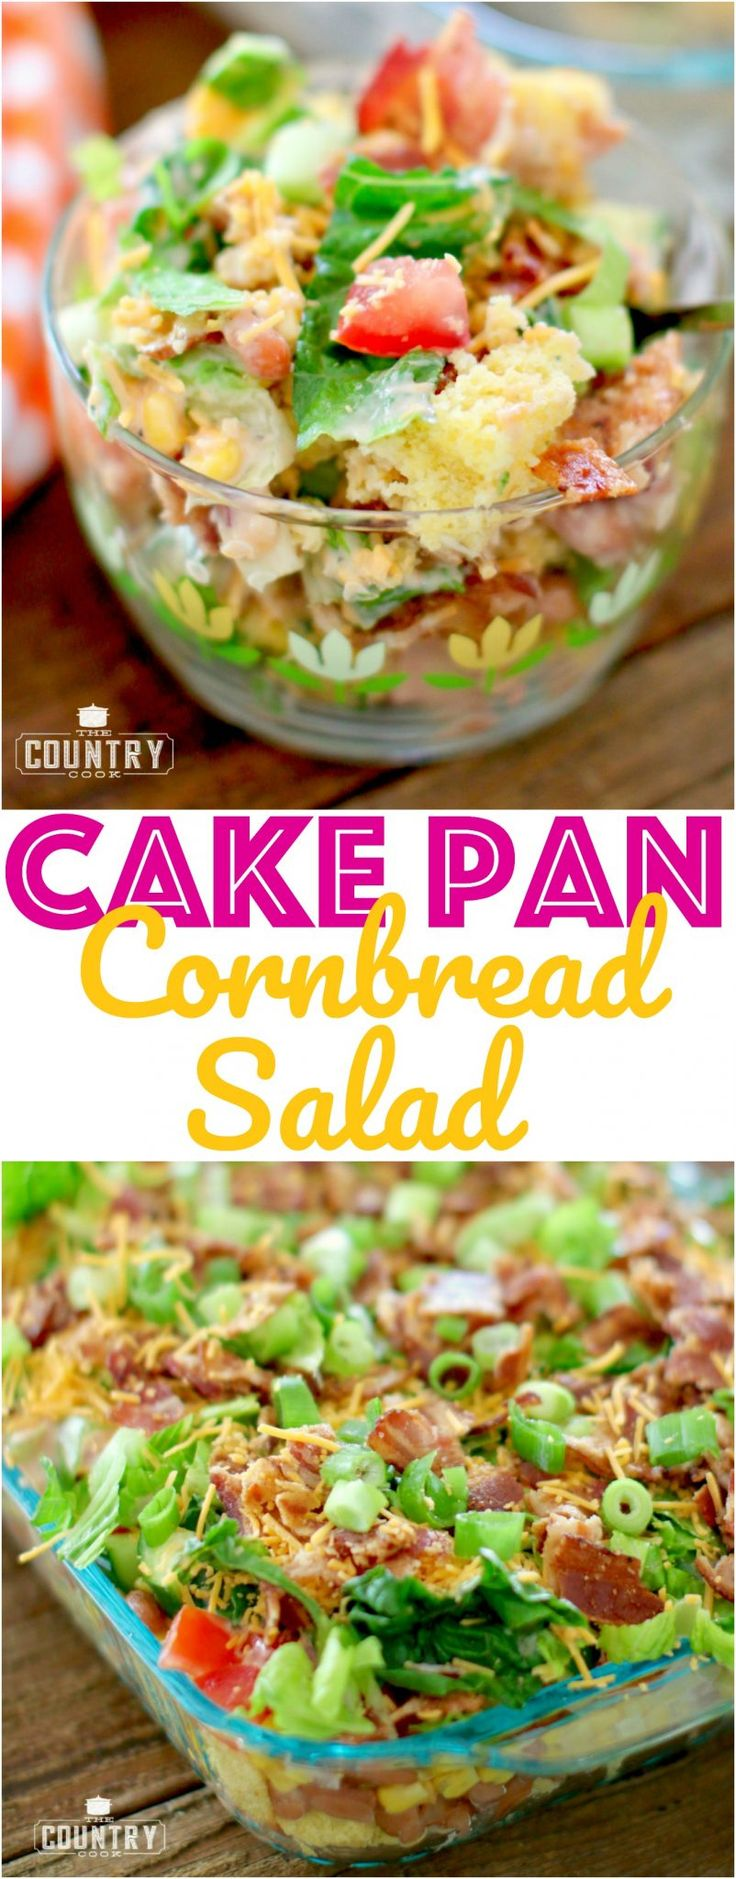 Cake Pan Layered Cornbread Salad with Lipton Iced Tea and The Country Cook #ad #LiptonMeal #LiptonMealSweepstakes